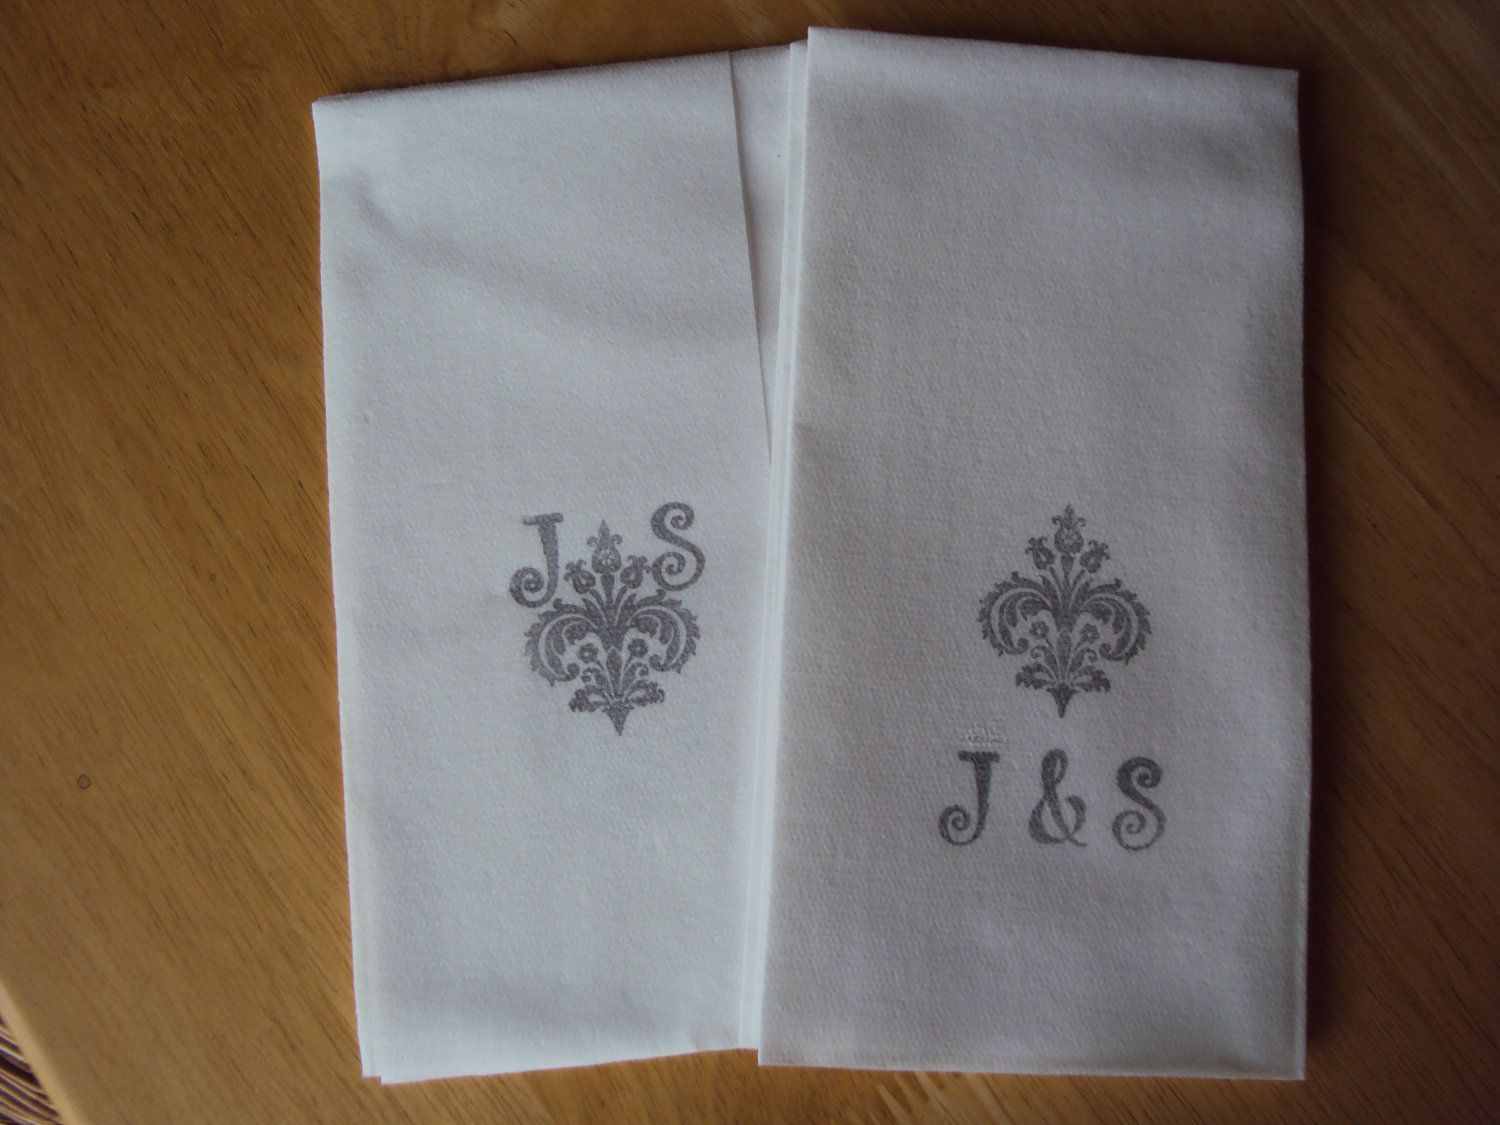 100 Personalized Hand Stamped Guest Towels Or Napkins For Weddings Bridal Showers Hostess Gifts